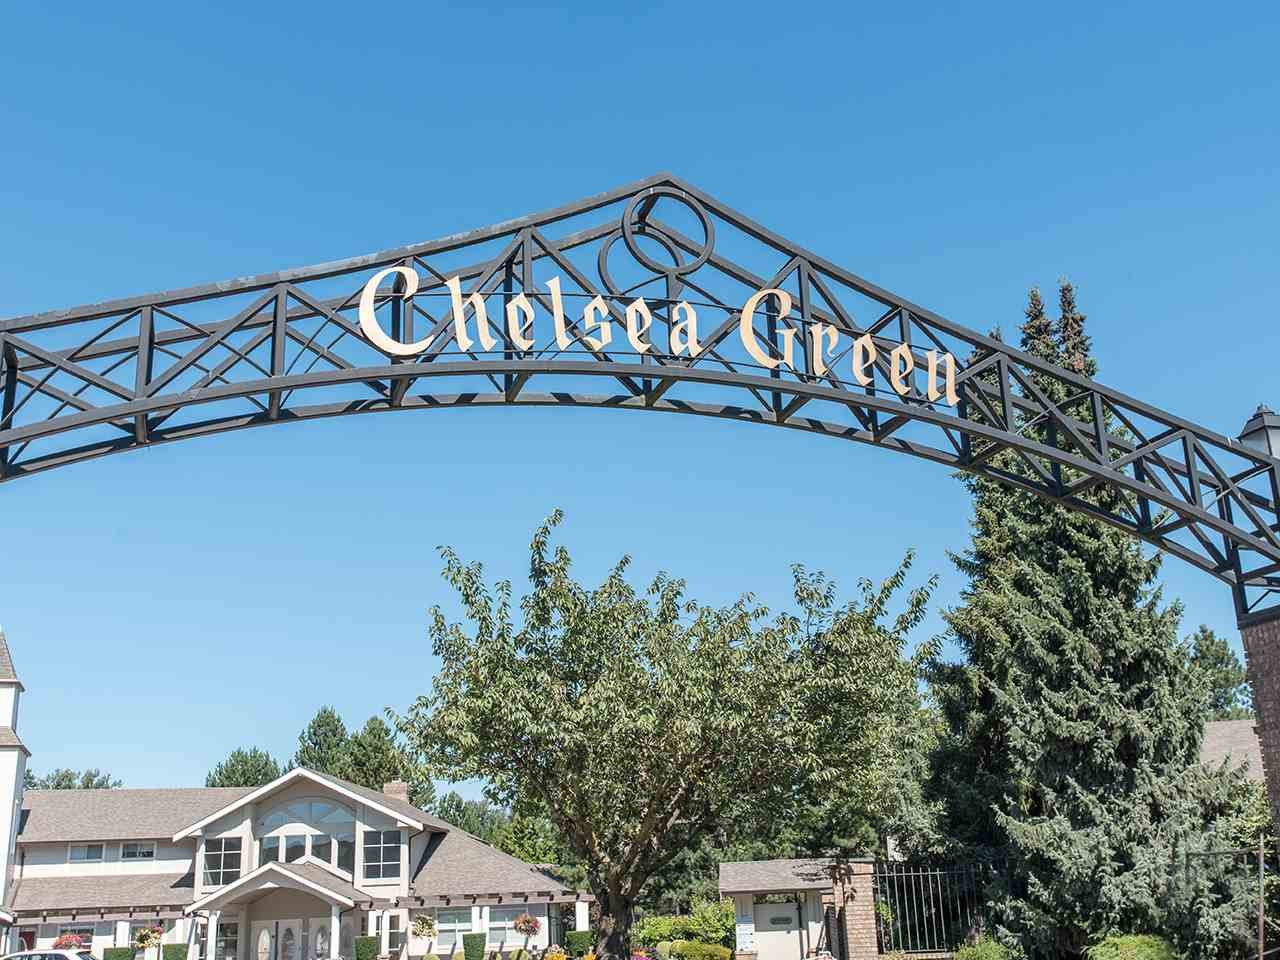 """Main Photo: 170 20391 96 Avenue in Langley: Walnut Grove Townhouse for sale in """"CHELSEA GREEN"""" : MLS®# R2494779"""